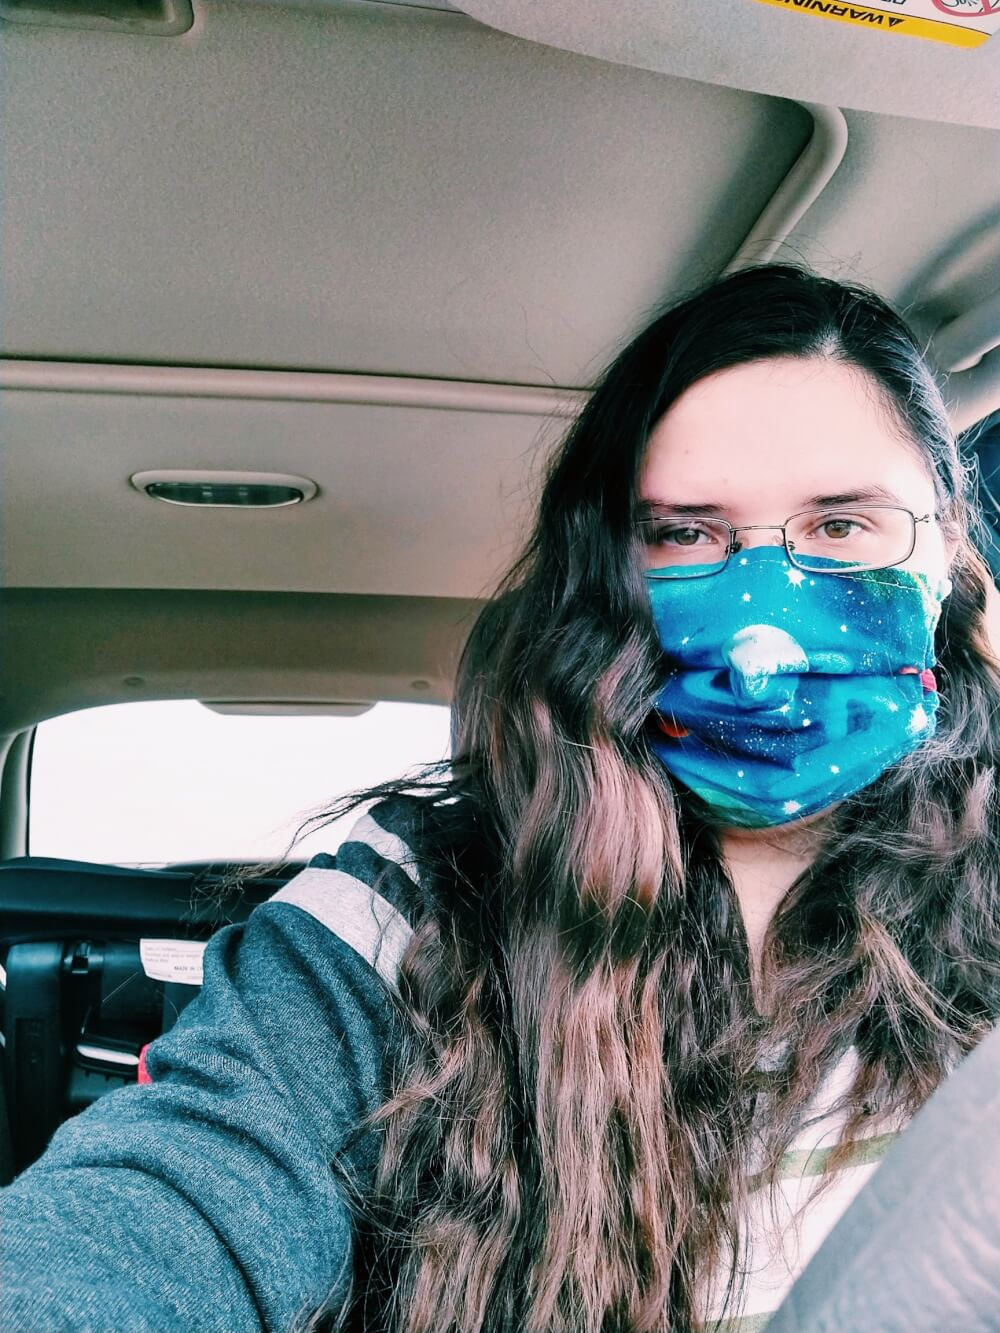 Selfie of me wearing a planetary mask, with wavy hair, in my car